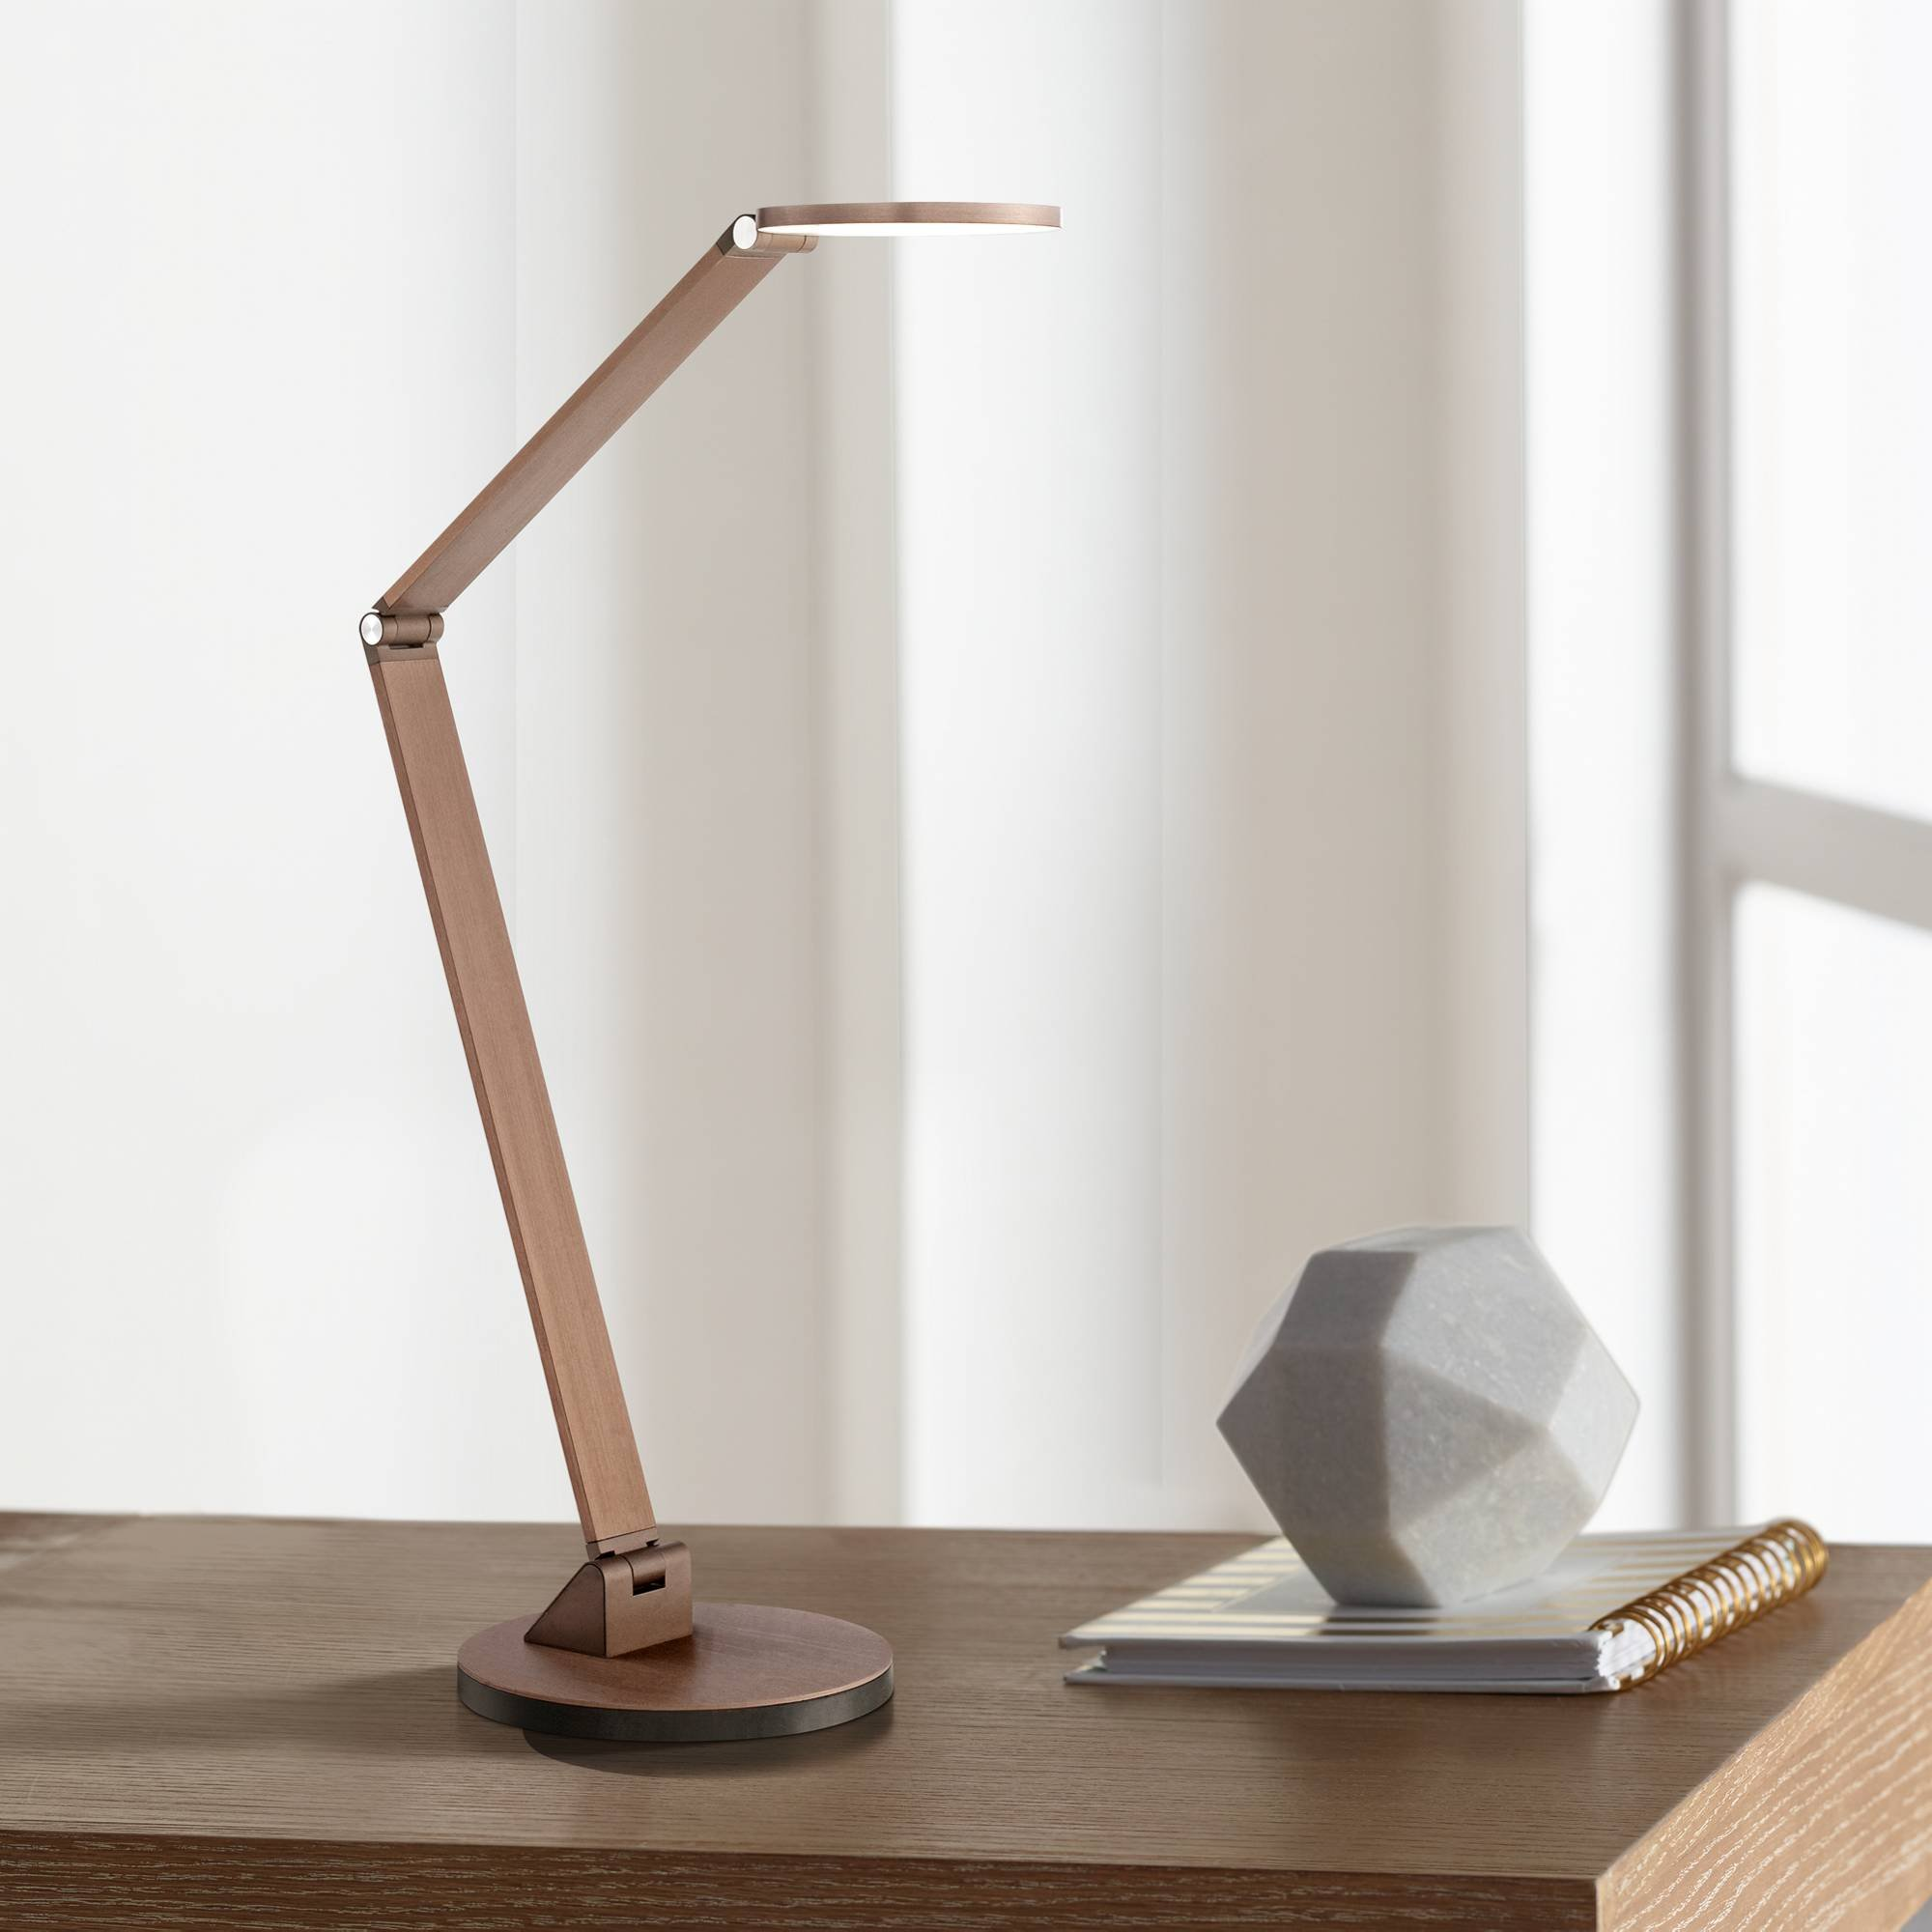 Magnum Modern Desk Table Lamp LED Adjustable Arm Head French Bronze Metal for Office Craft Hobby - Possini Euro Design by Possini Euro Design